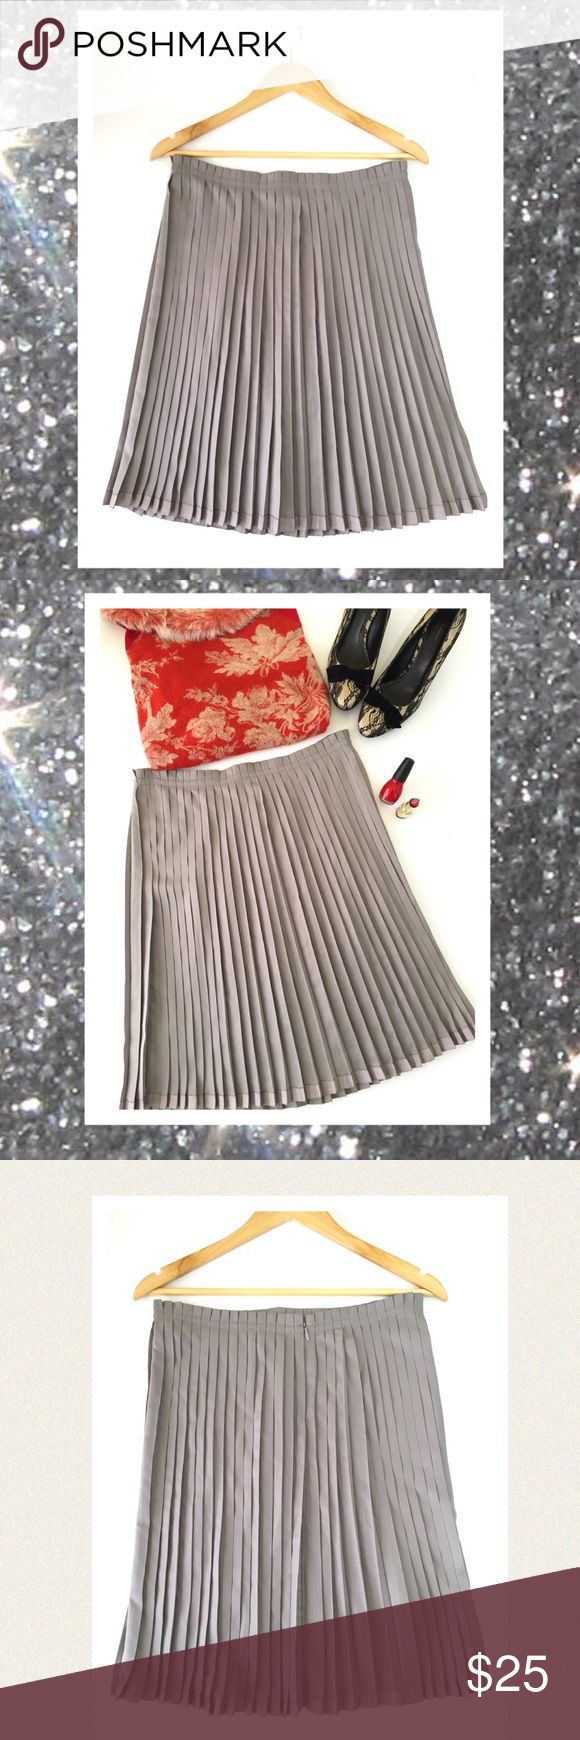 """🆕 GAP pewter grey pleated skirt. Adorable sassy little pleated skirt will look fabulous with tall boots or heels. A perfect and versatile holiday skirt! Zips in the back. Worn once. Perfect condition. Appx measurements: 🔹Waist 34"""" 🔹Length 21"""" 🔹Hip area 34"""" GAP Skirts"""